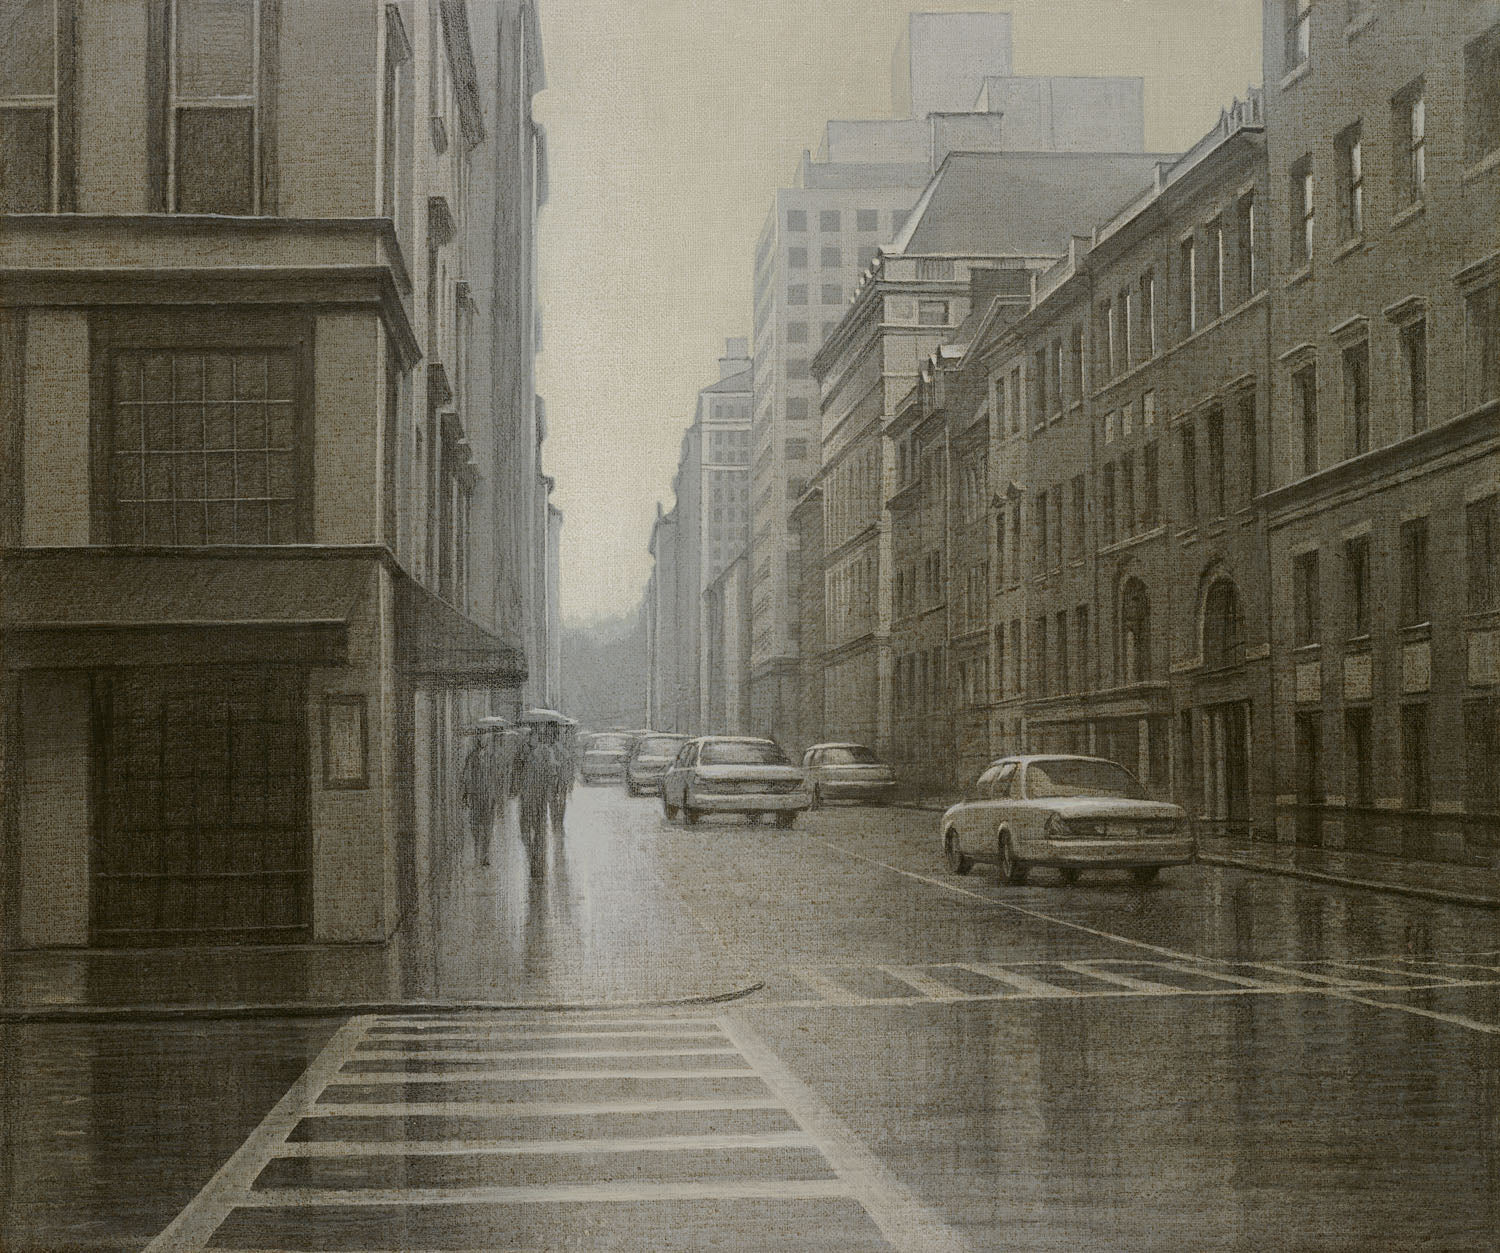 A MISTY DAY - MANHATTAN